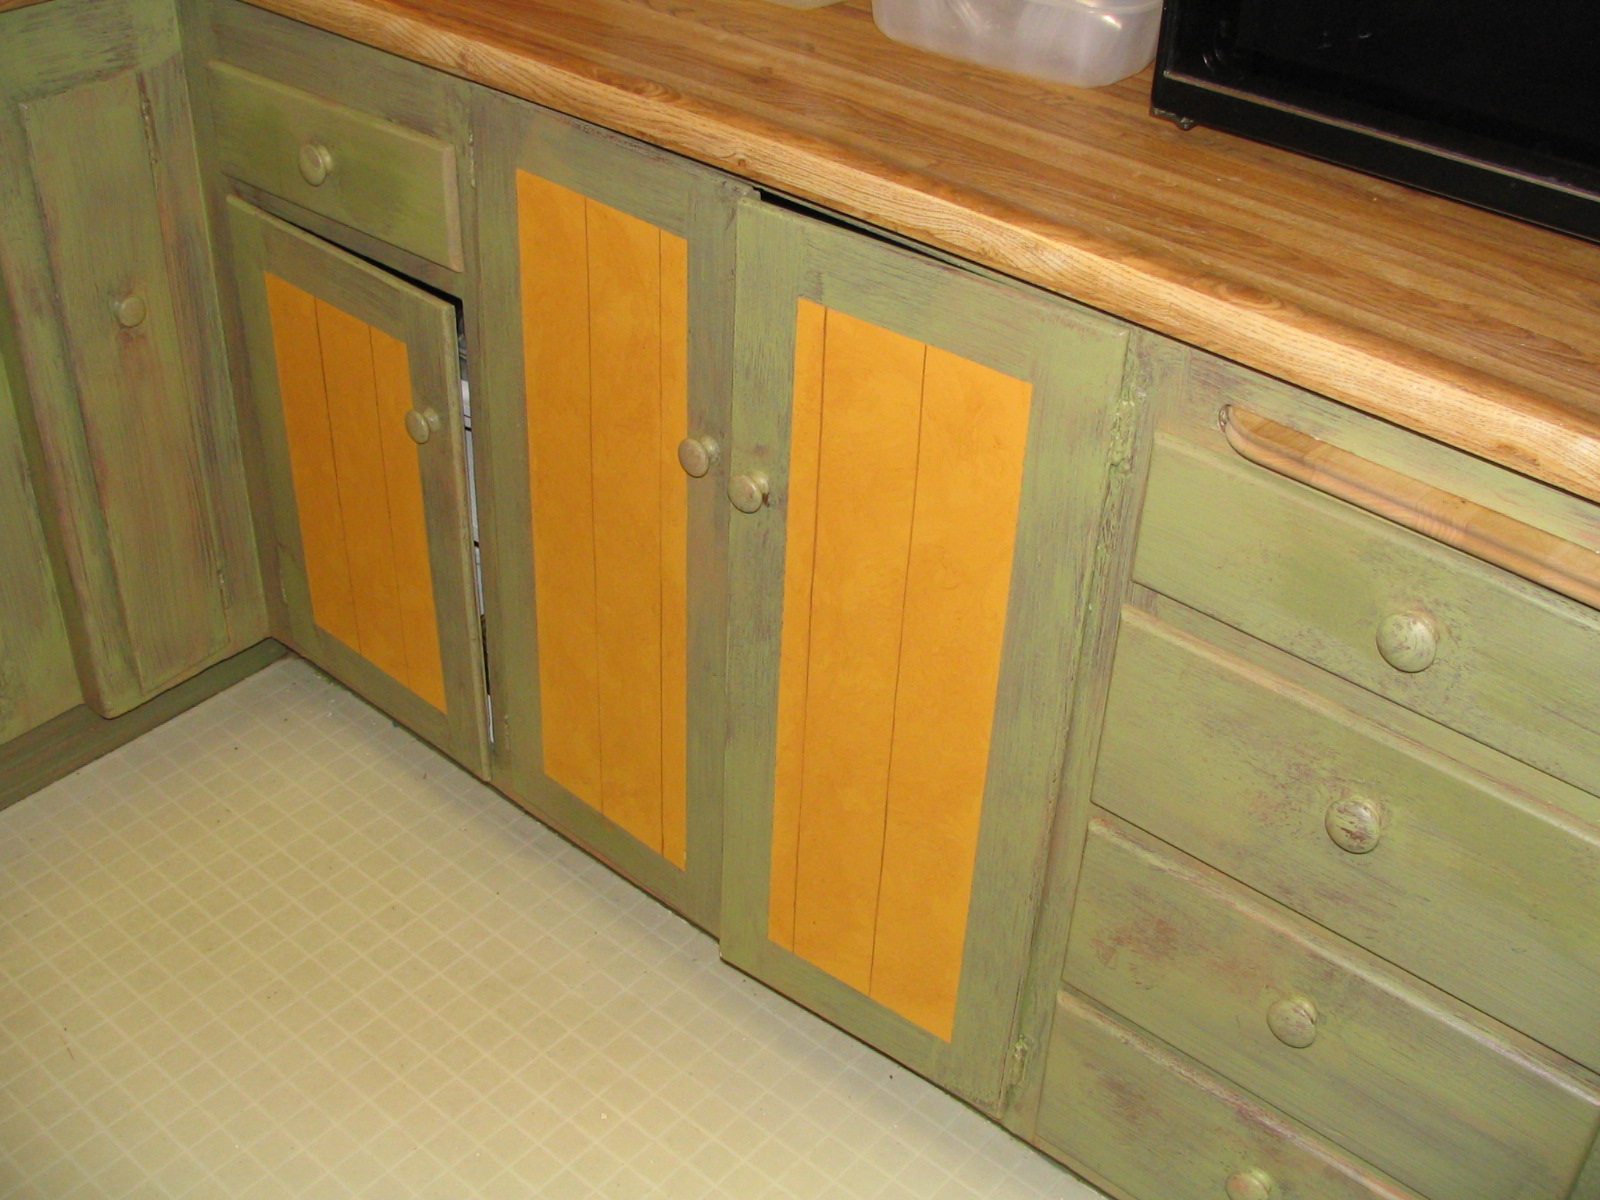 (AFTER) Cabinets